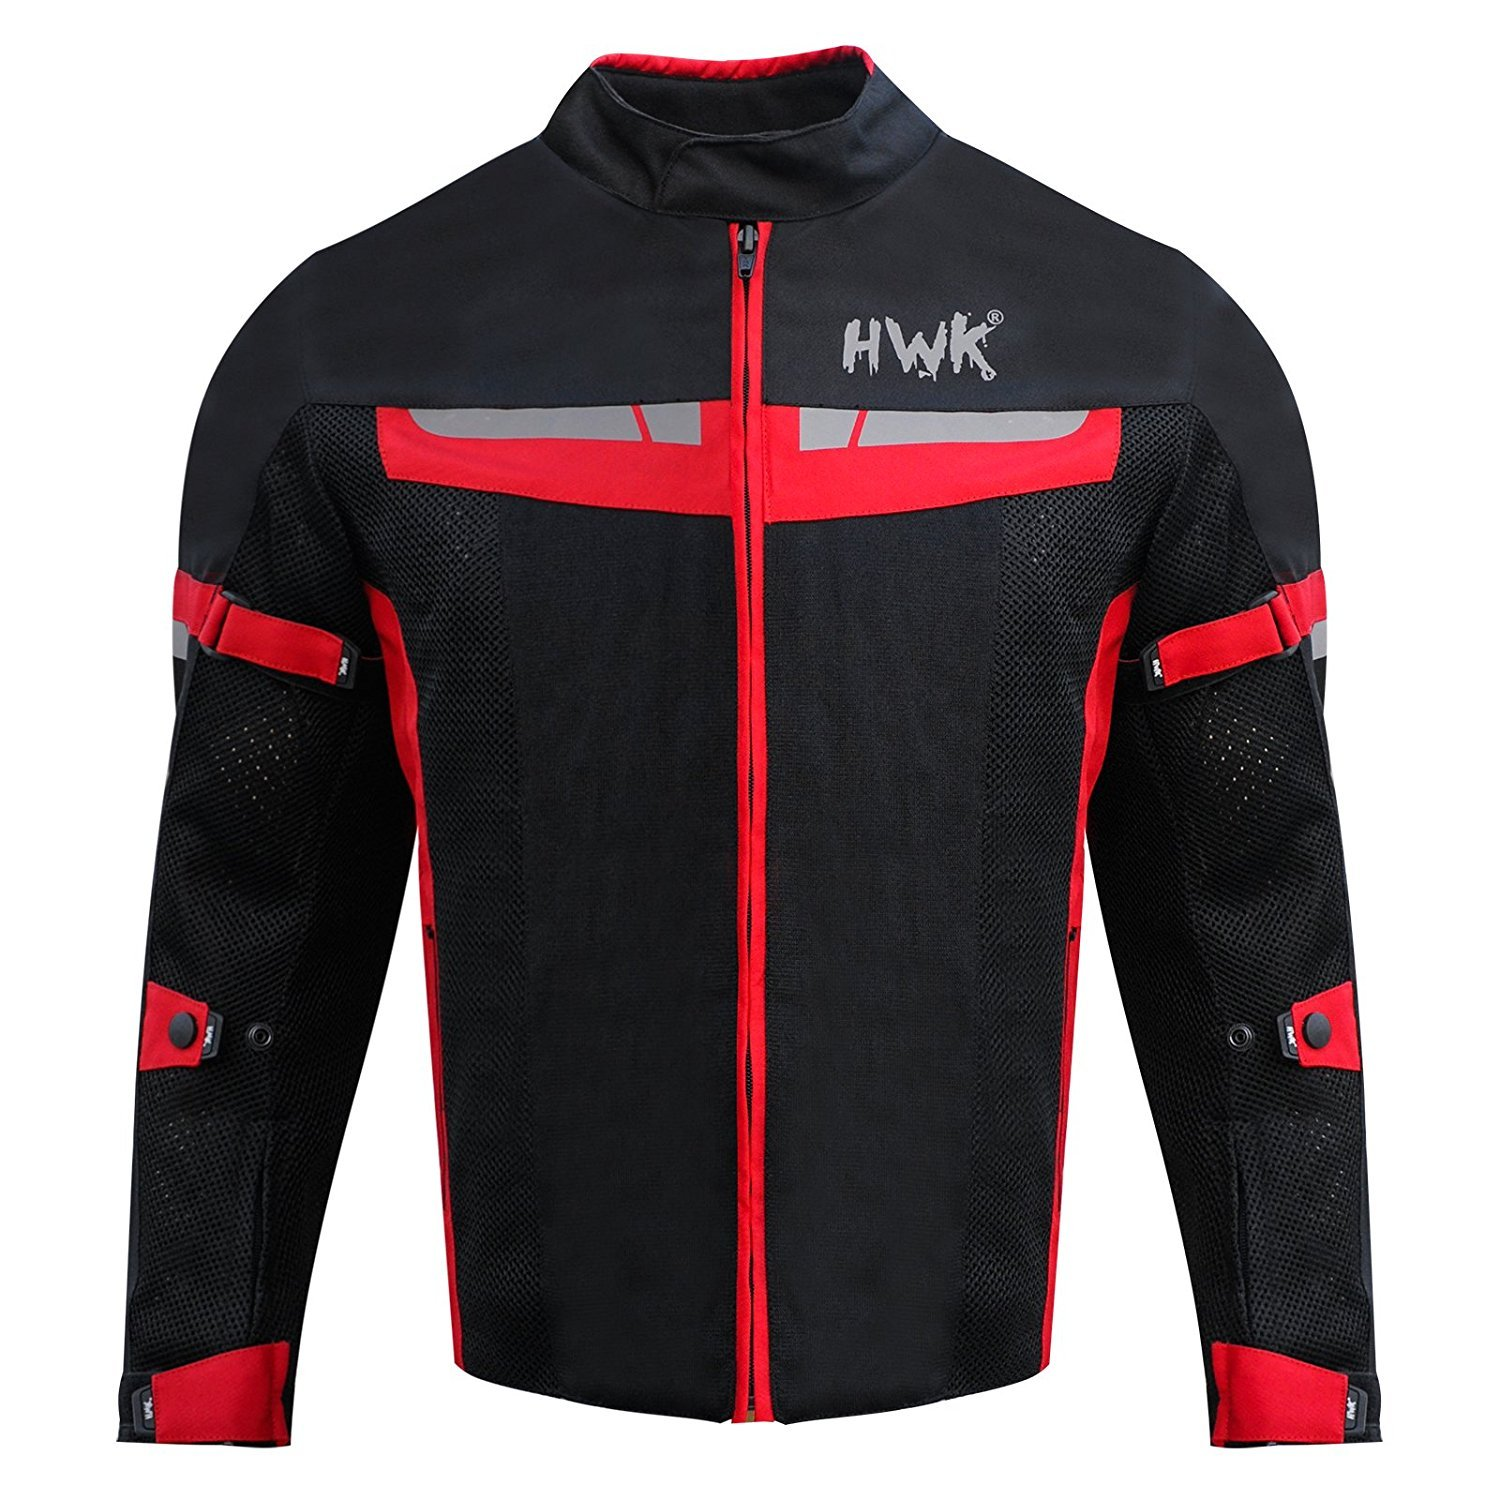 HWK Motorsports Direct Mesh Motorcycle Jacket Mesh Riding Jacket Coat Motorbike Jacket Biker Air Ventilation Cordura CE Armoured 100% Breathable 1 YEAR WARRANTY!! (XX-Large, Red)